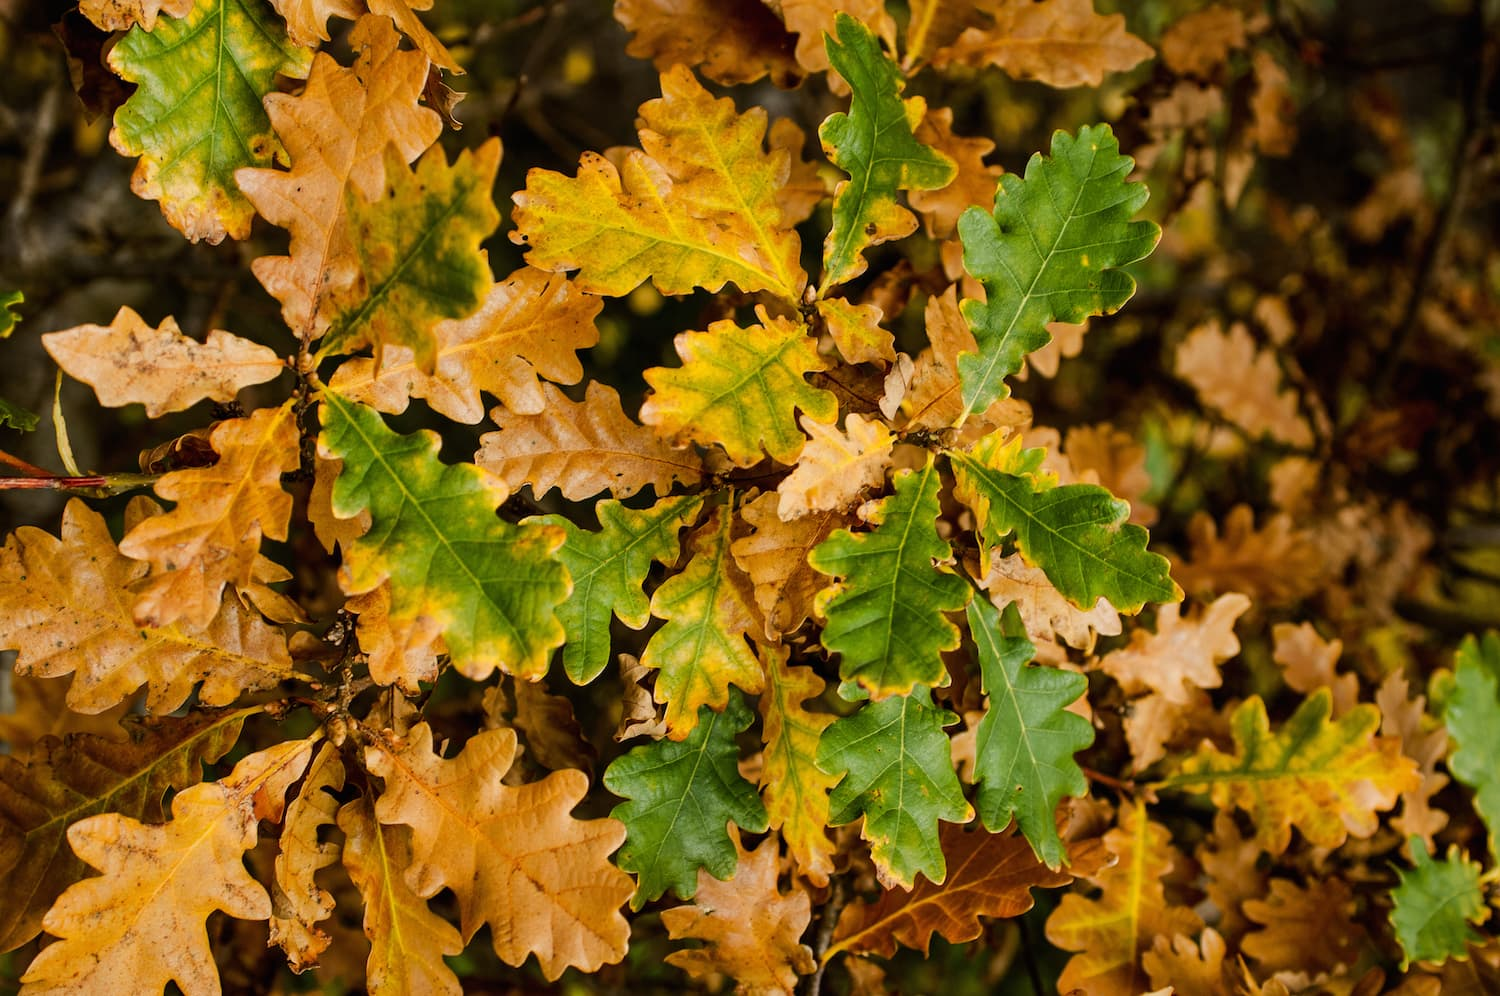 irish-oak-leaf-sessile-oak ID 49787972 © Alex Scott | Dreamstime.com